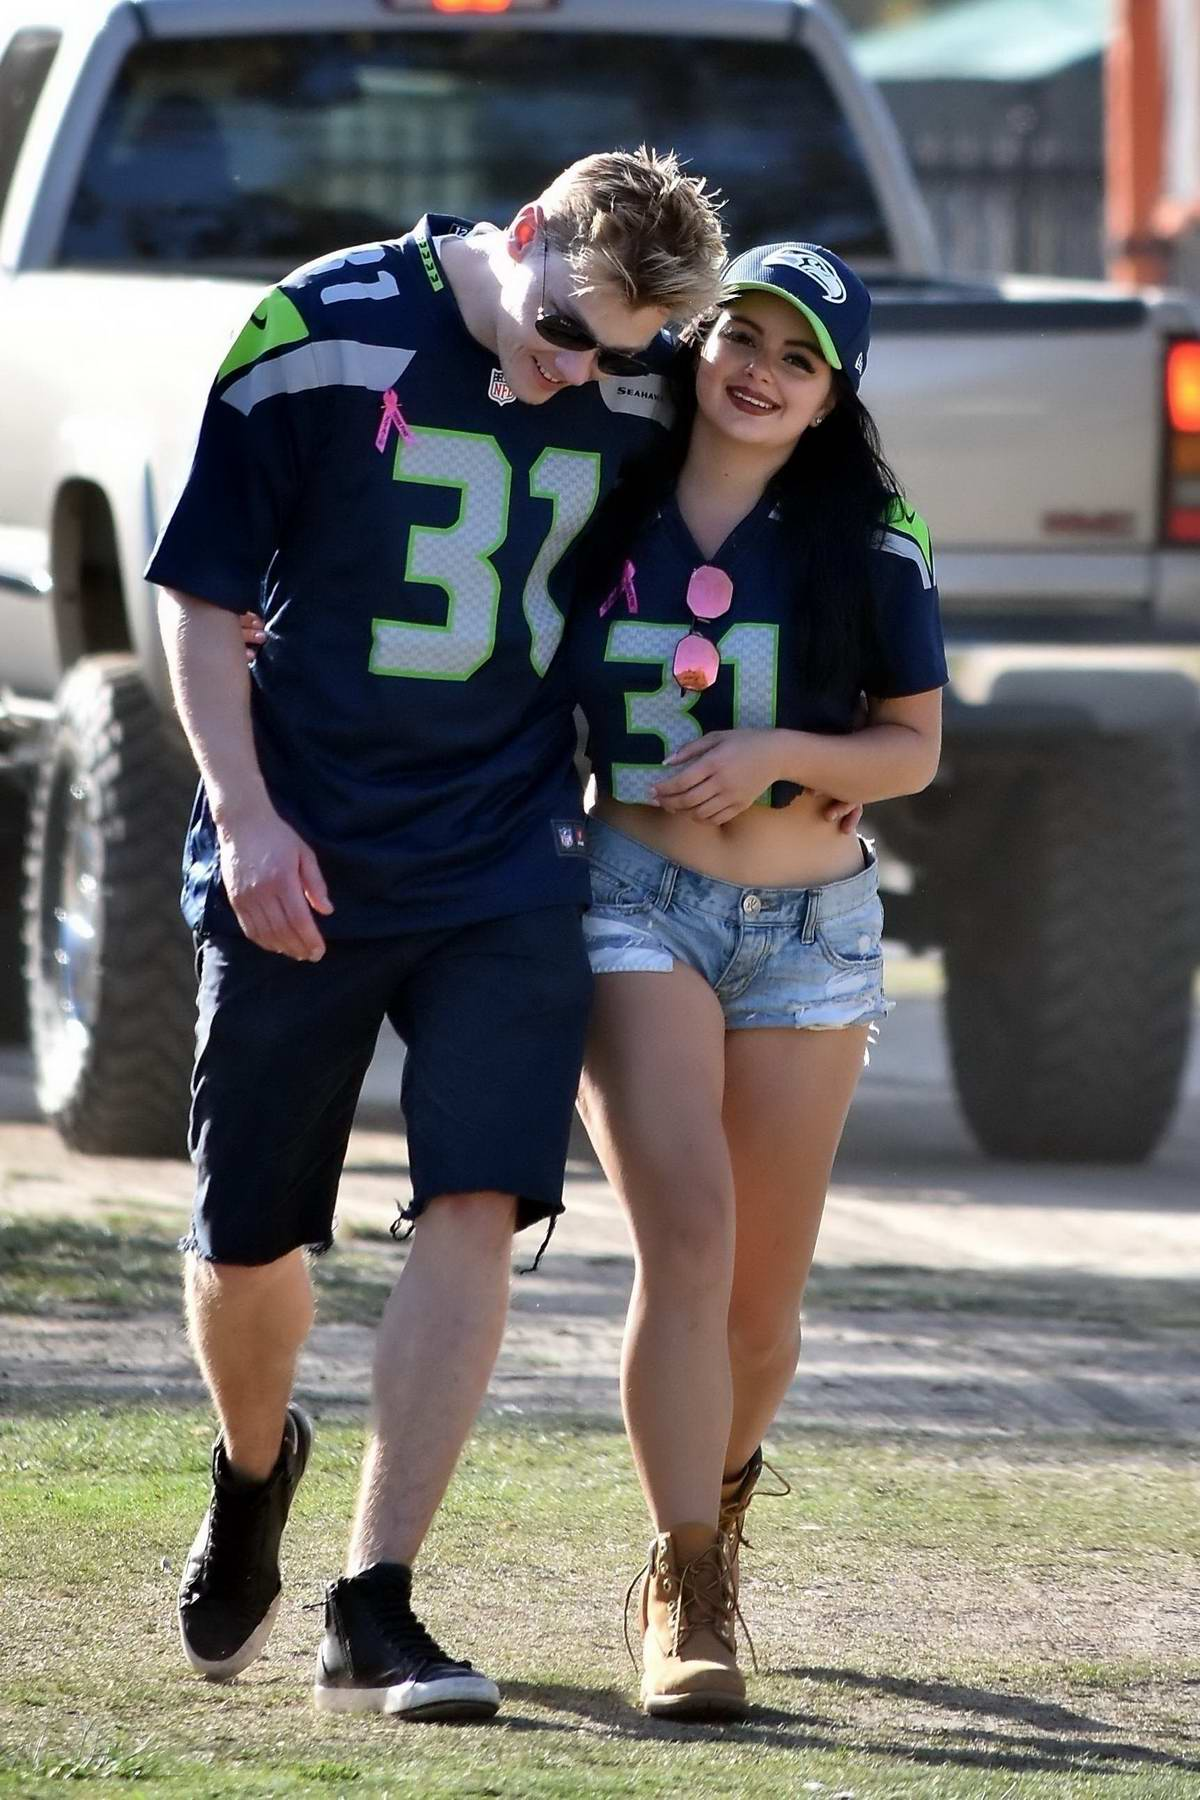 ariel-winter-wears-a-crop-top-and-denim-shorts-at-the-seattle-seahawks-vs-los-angeles-rams-game-in-los-angeles-081017_9.jpg